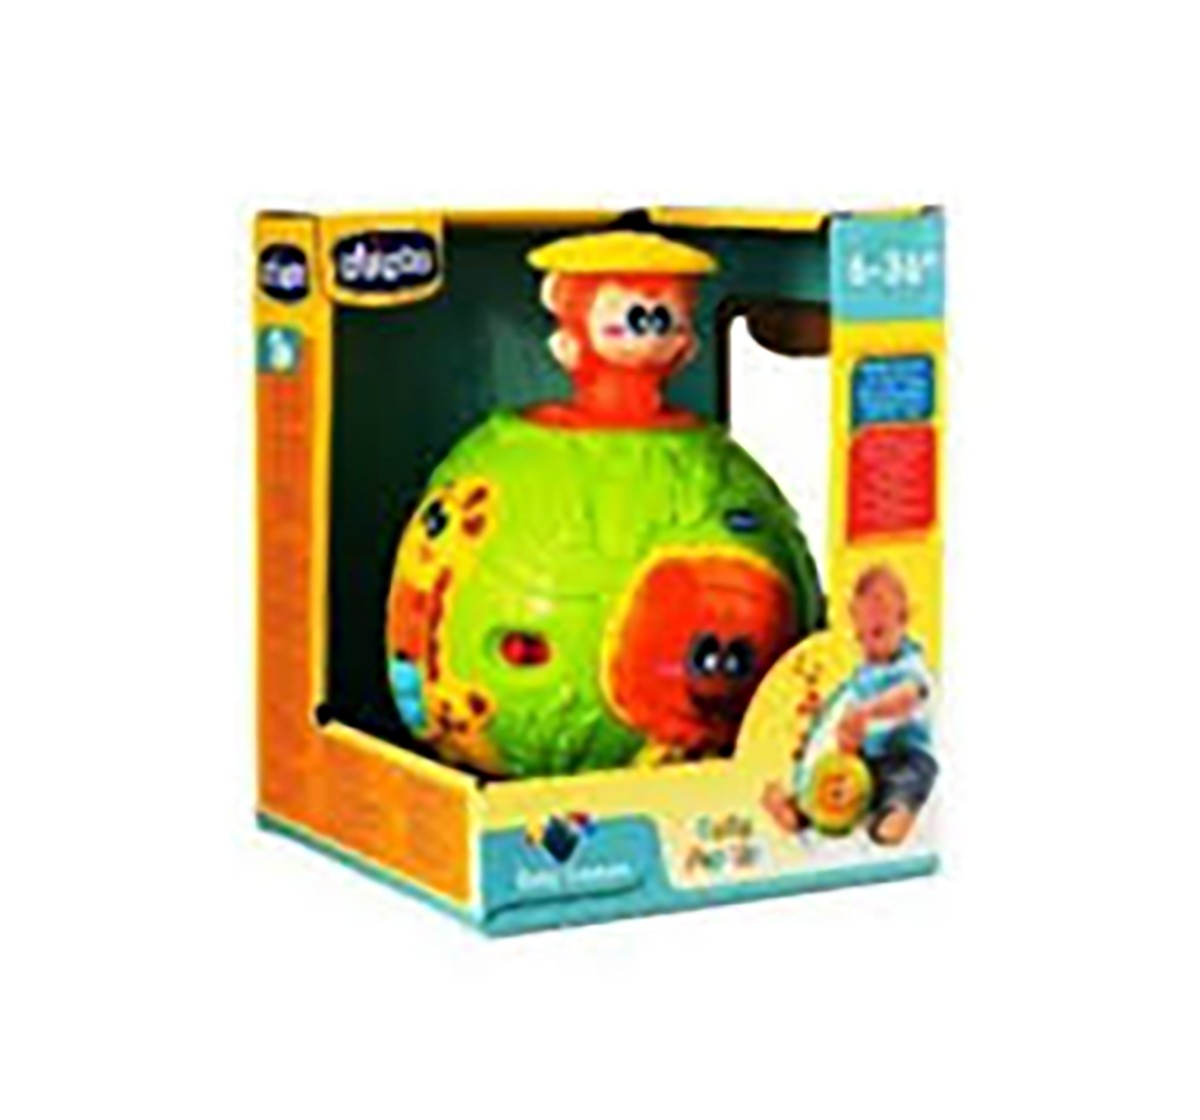 Chicco Palla Pop Up Activity Toy with Light & Sound for Kids age 6M+